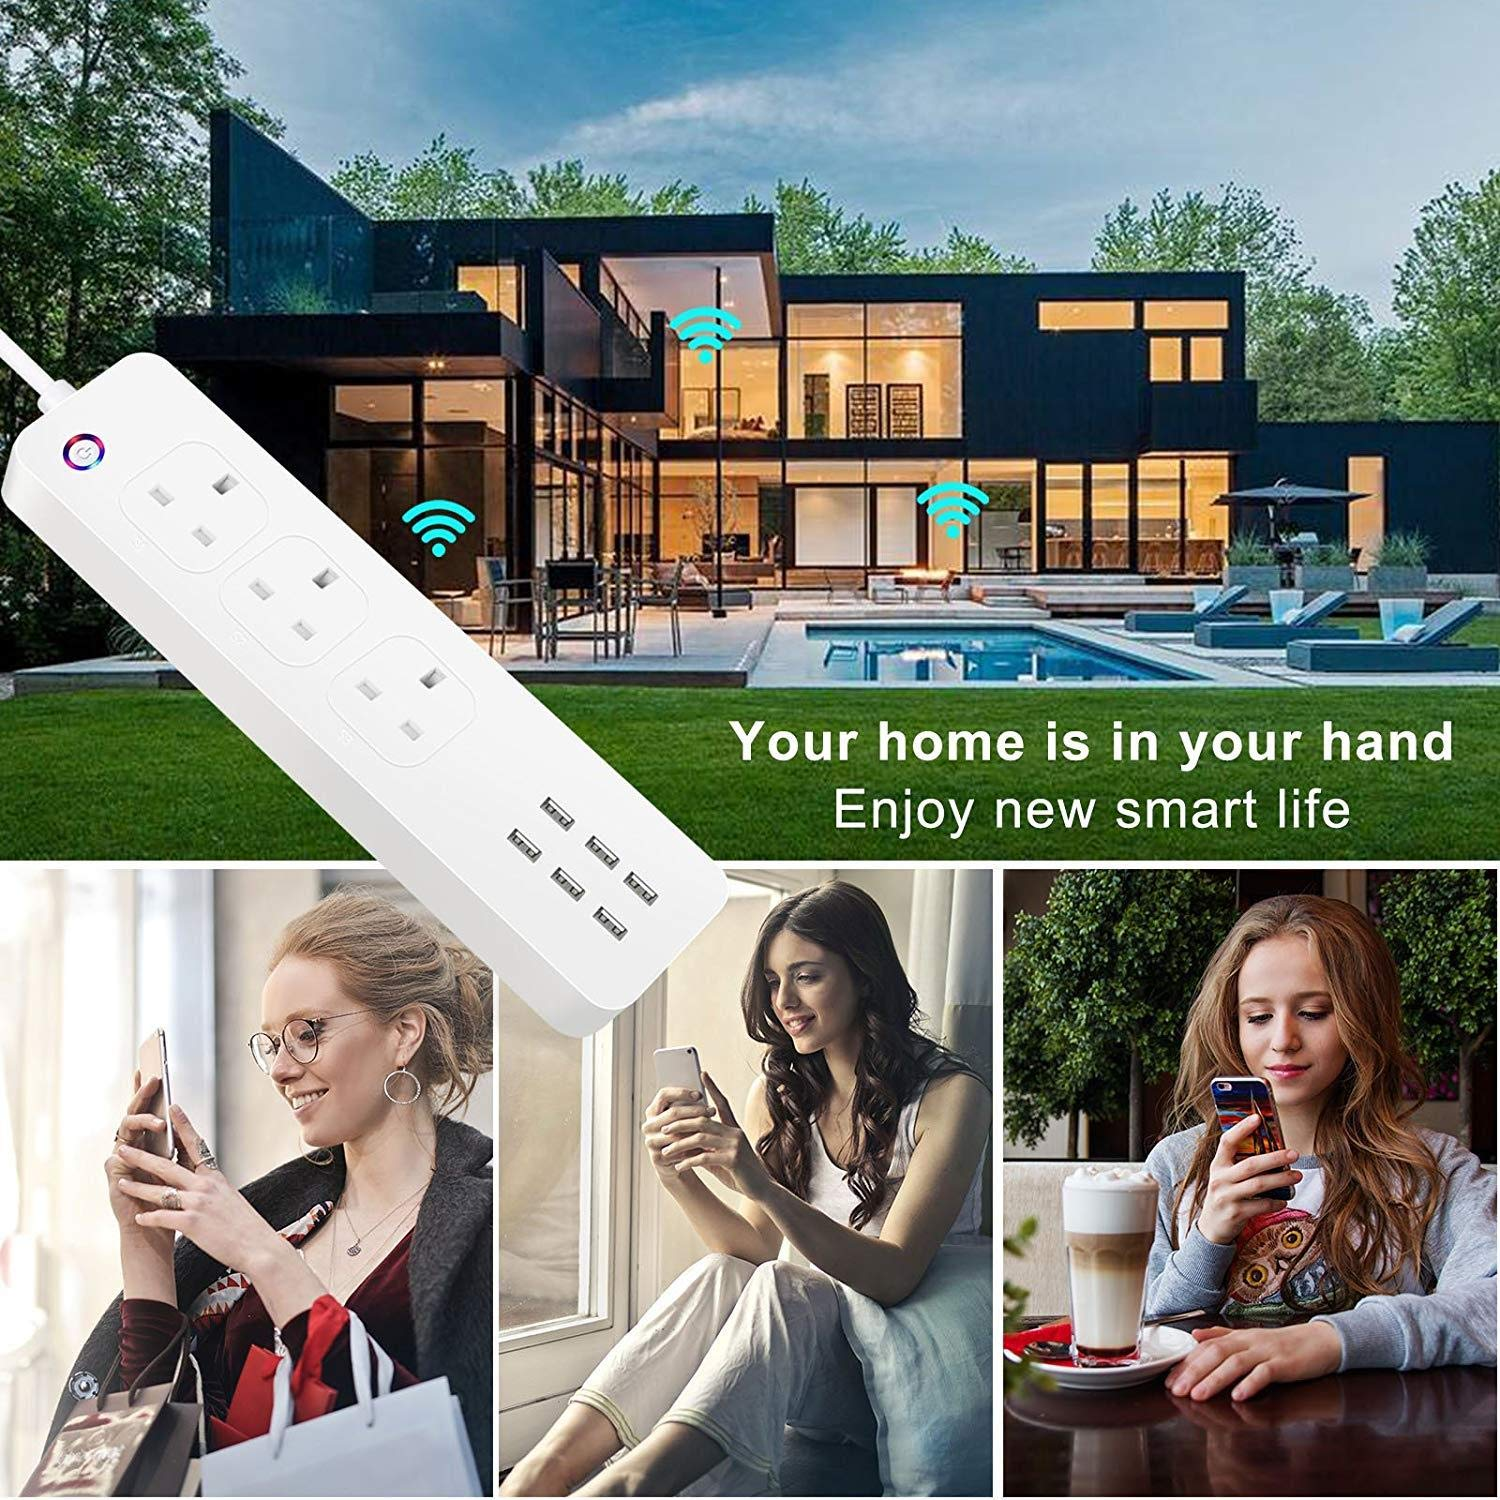 Smart WiFi Power Strip APP Remote Voice Individual Control with Amazon Alexa Google Home Assistant 3 AC 6 USB Extension Lead Cord Timer via Android iOS Smartphone Tablets Works with WiFi 2.4GHz